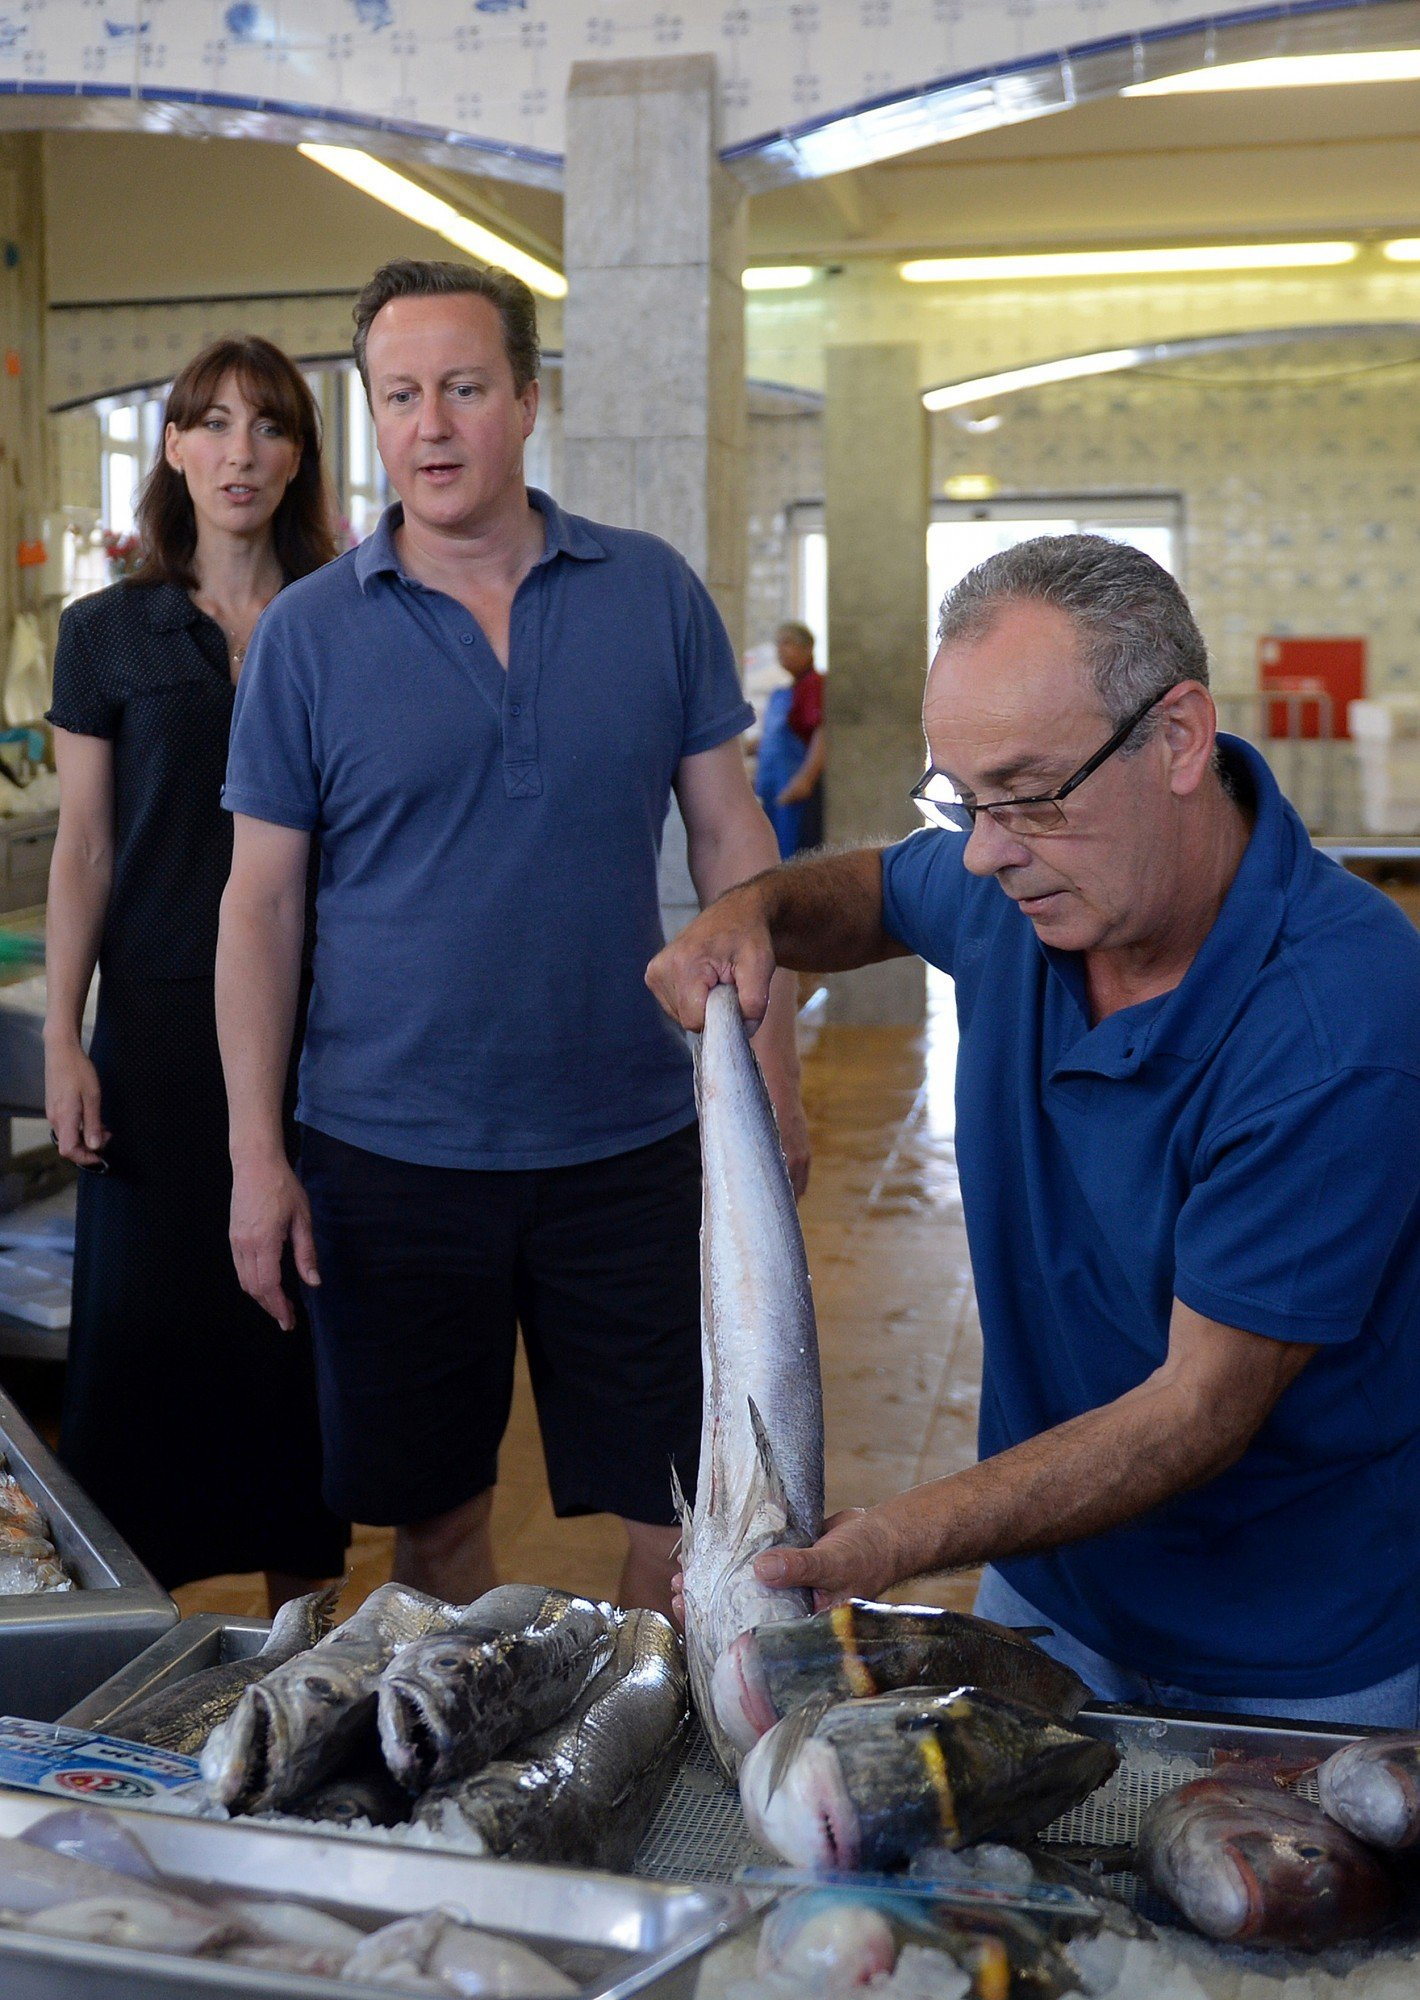 Britain's Prime Minister David Cameron (2nd L) and his wife Samantha (L) are pictured as they visit a seafood market while on holiday in Cascais in Portugal, on August 5, 2014. A British minister, Baroness Sayeeda Warsi, who was the first Muslim woman to sit in the Cabinet has resigned over the British government's policy on Gaza, she said Tuesday.  AFP PHOTO / FRANCISCO LEONG/POOL